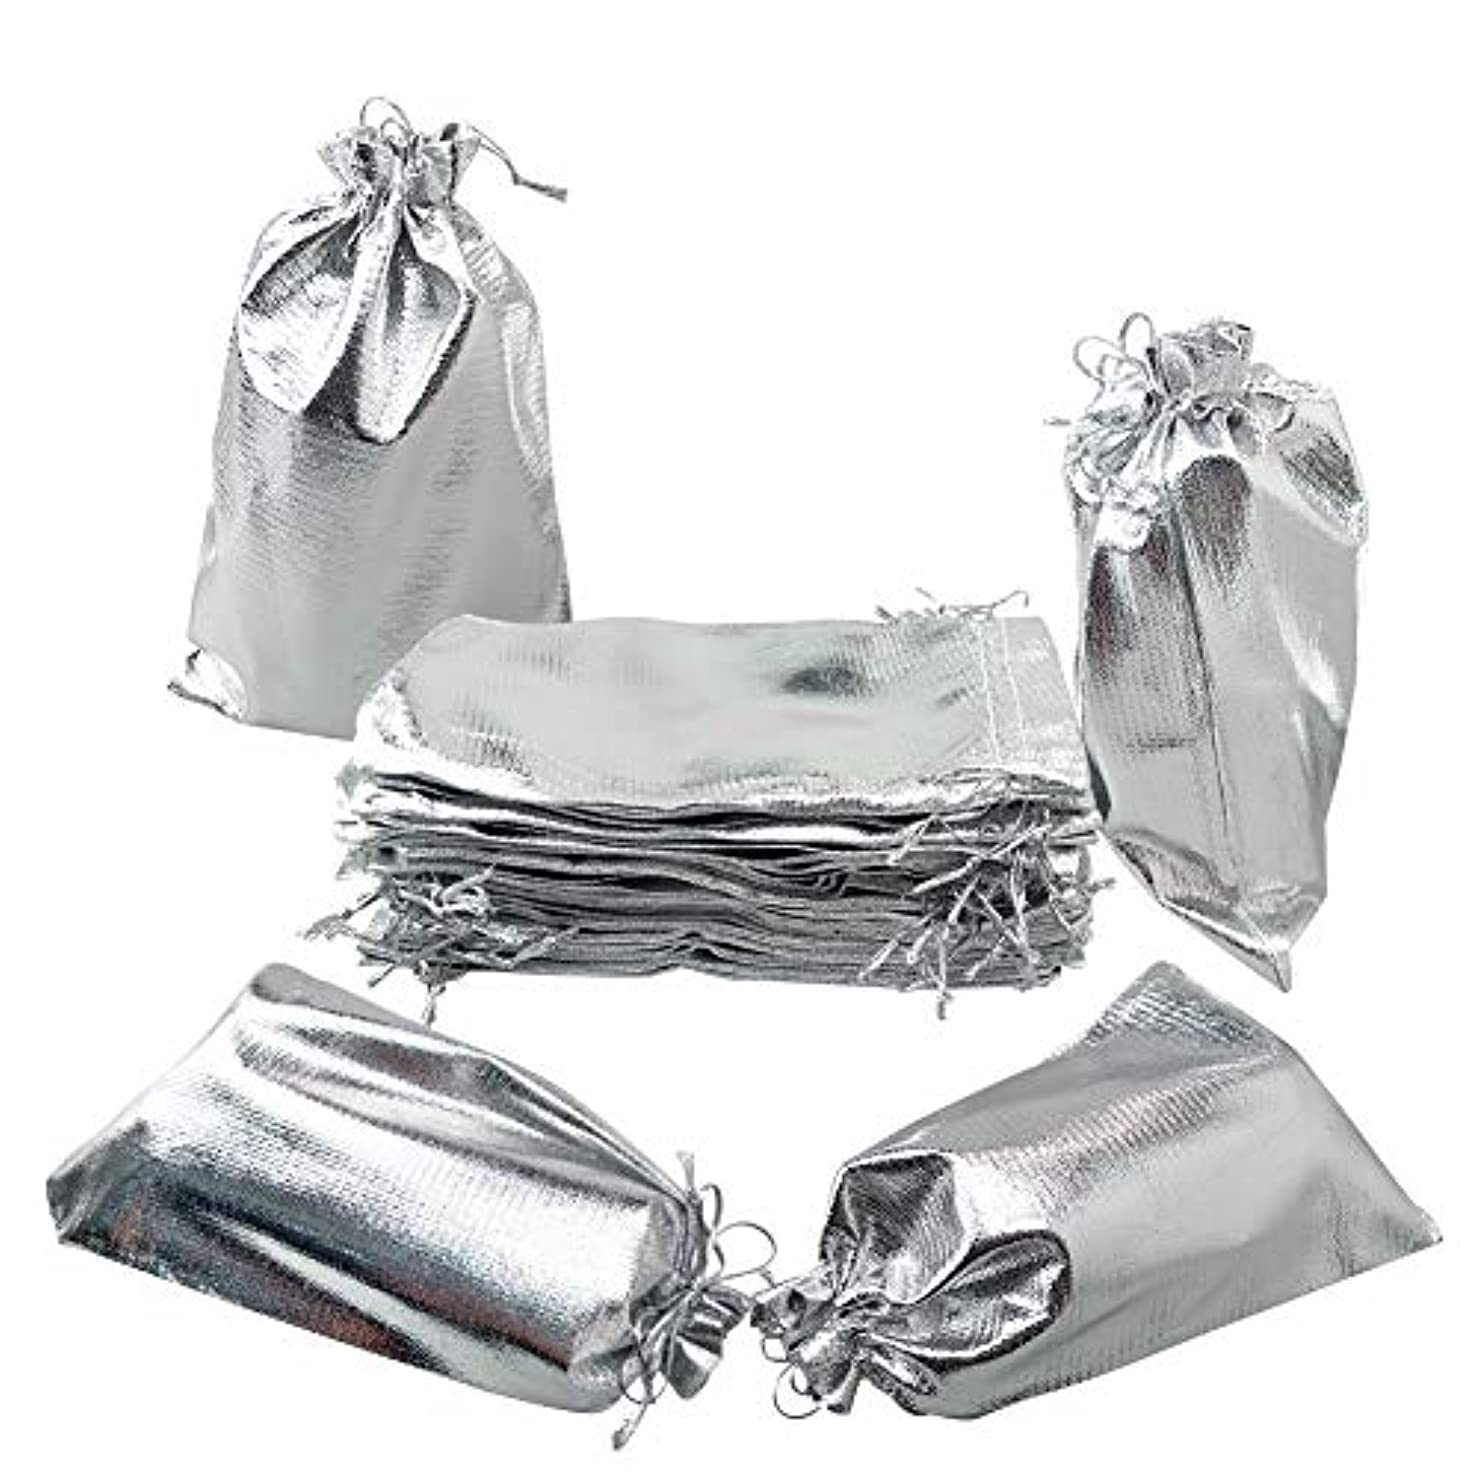 Hangnuo 50 PCS 5x7 Inch Silver Organza Bags with Drawstring, Party Wedding Favor Gift Bags Candy Earrings Jewelry Bags